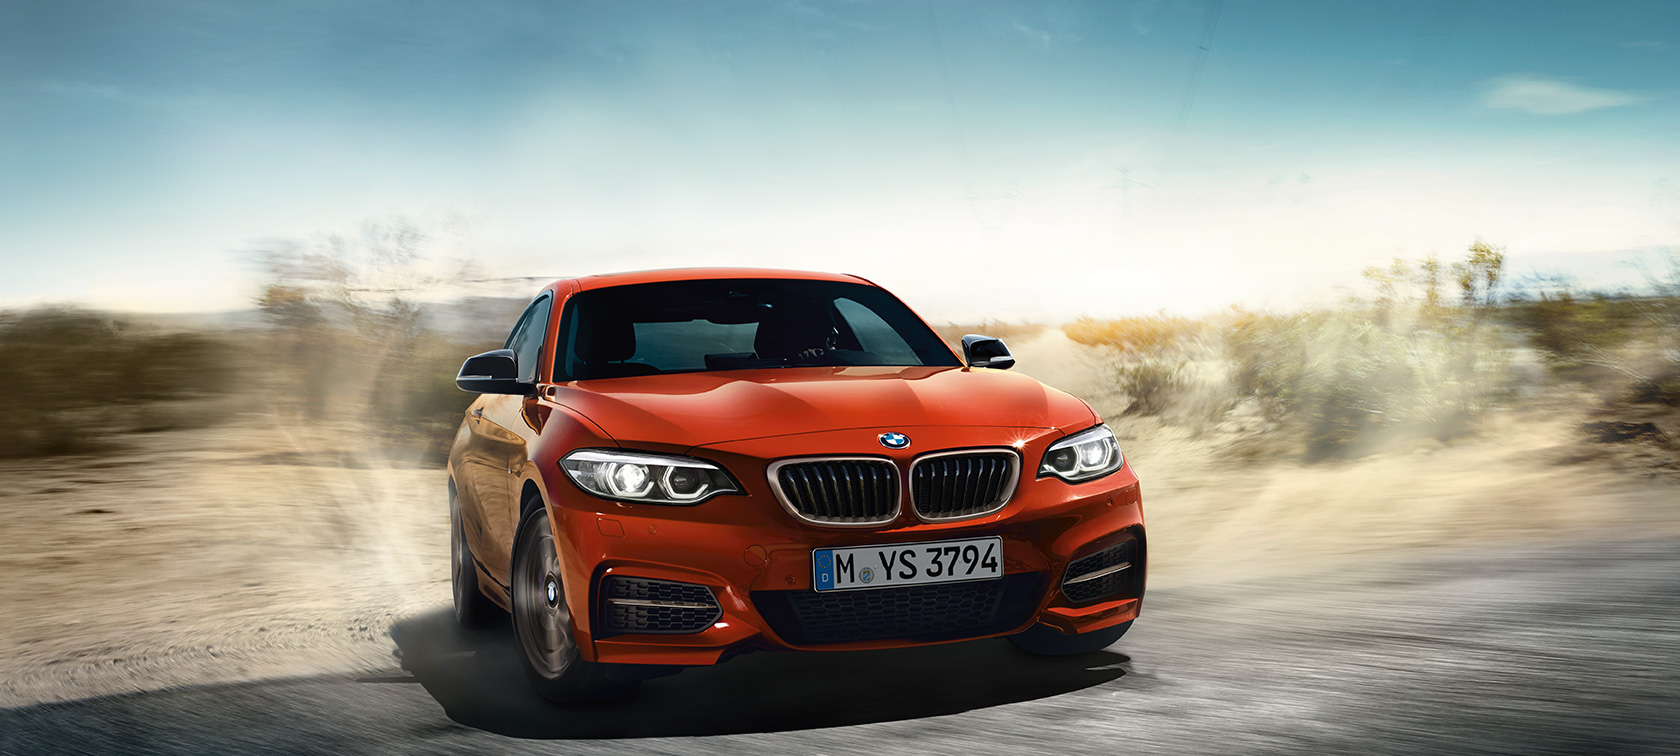 BMW 2 Series Coupé, dynamic driving shot